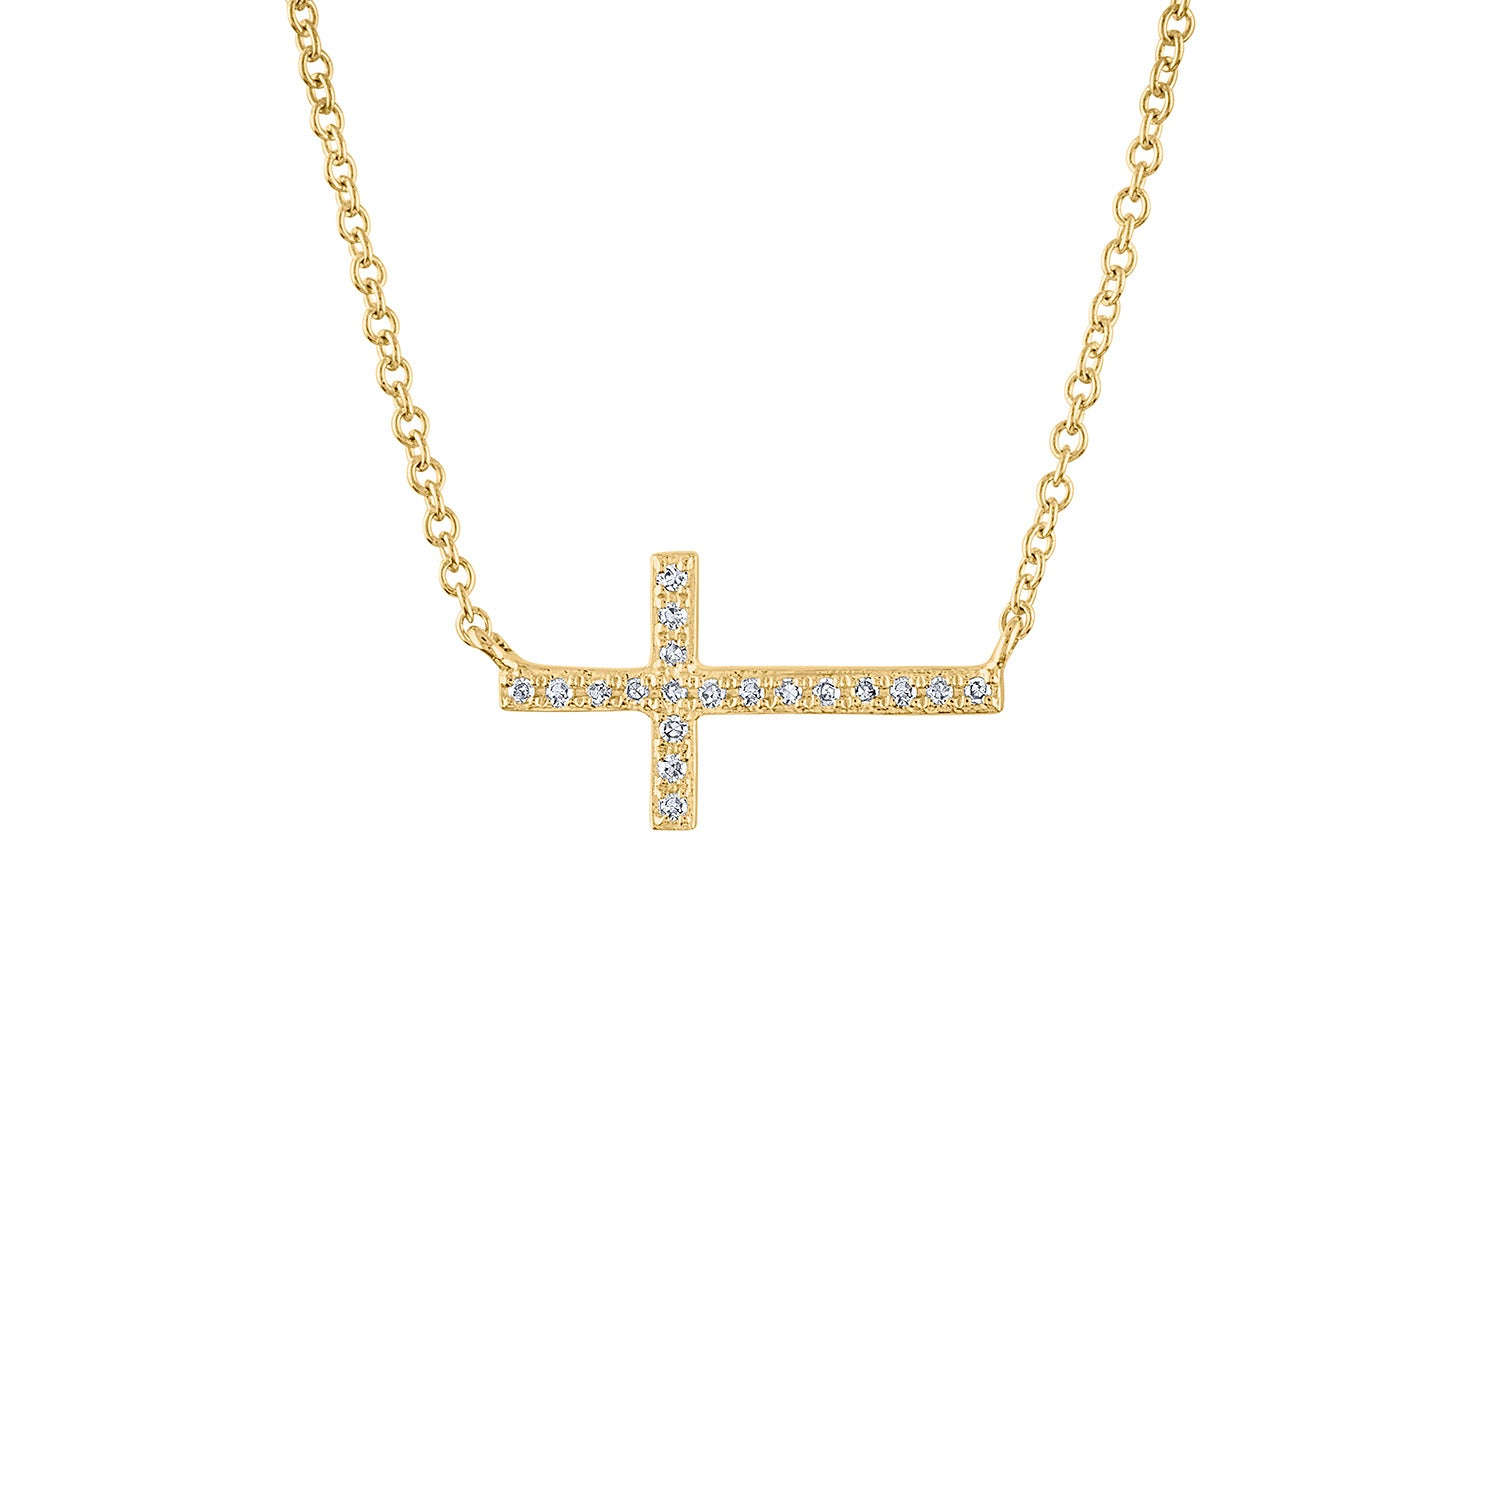 14KT GOLD SIDEWAYS DIAMOND CROSS NECKLACE